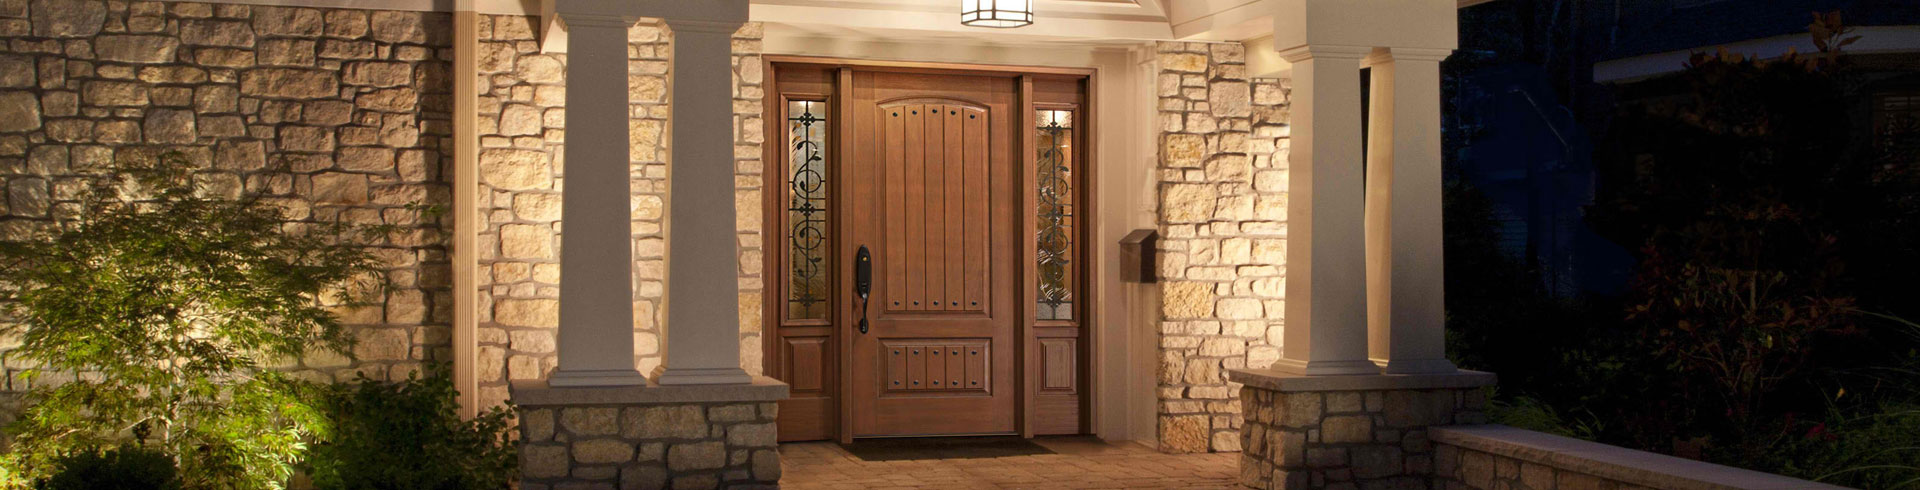 <h1>Front Doors</h1><p>The Front Door makes a big statement about your home. It should not only look attractive, but also be practical and long lasting.  <a href='doors.html'>Learn More ></a></p>